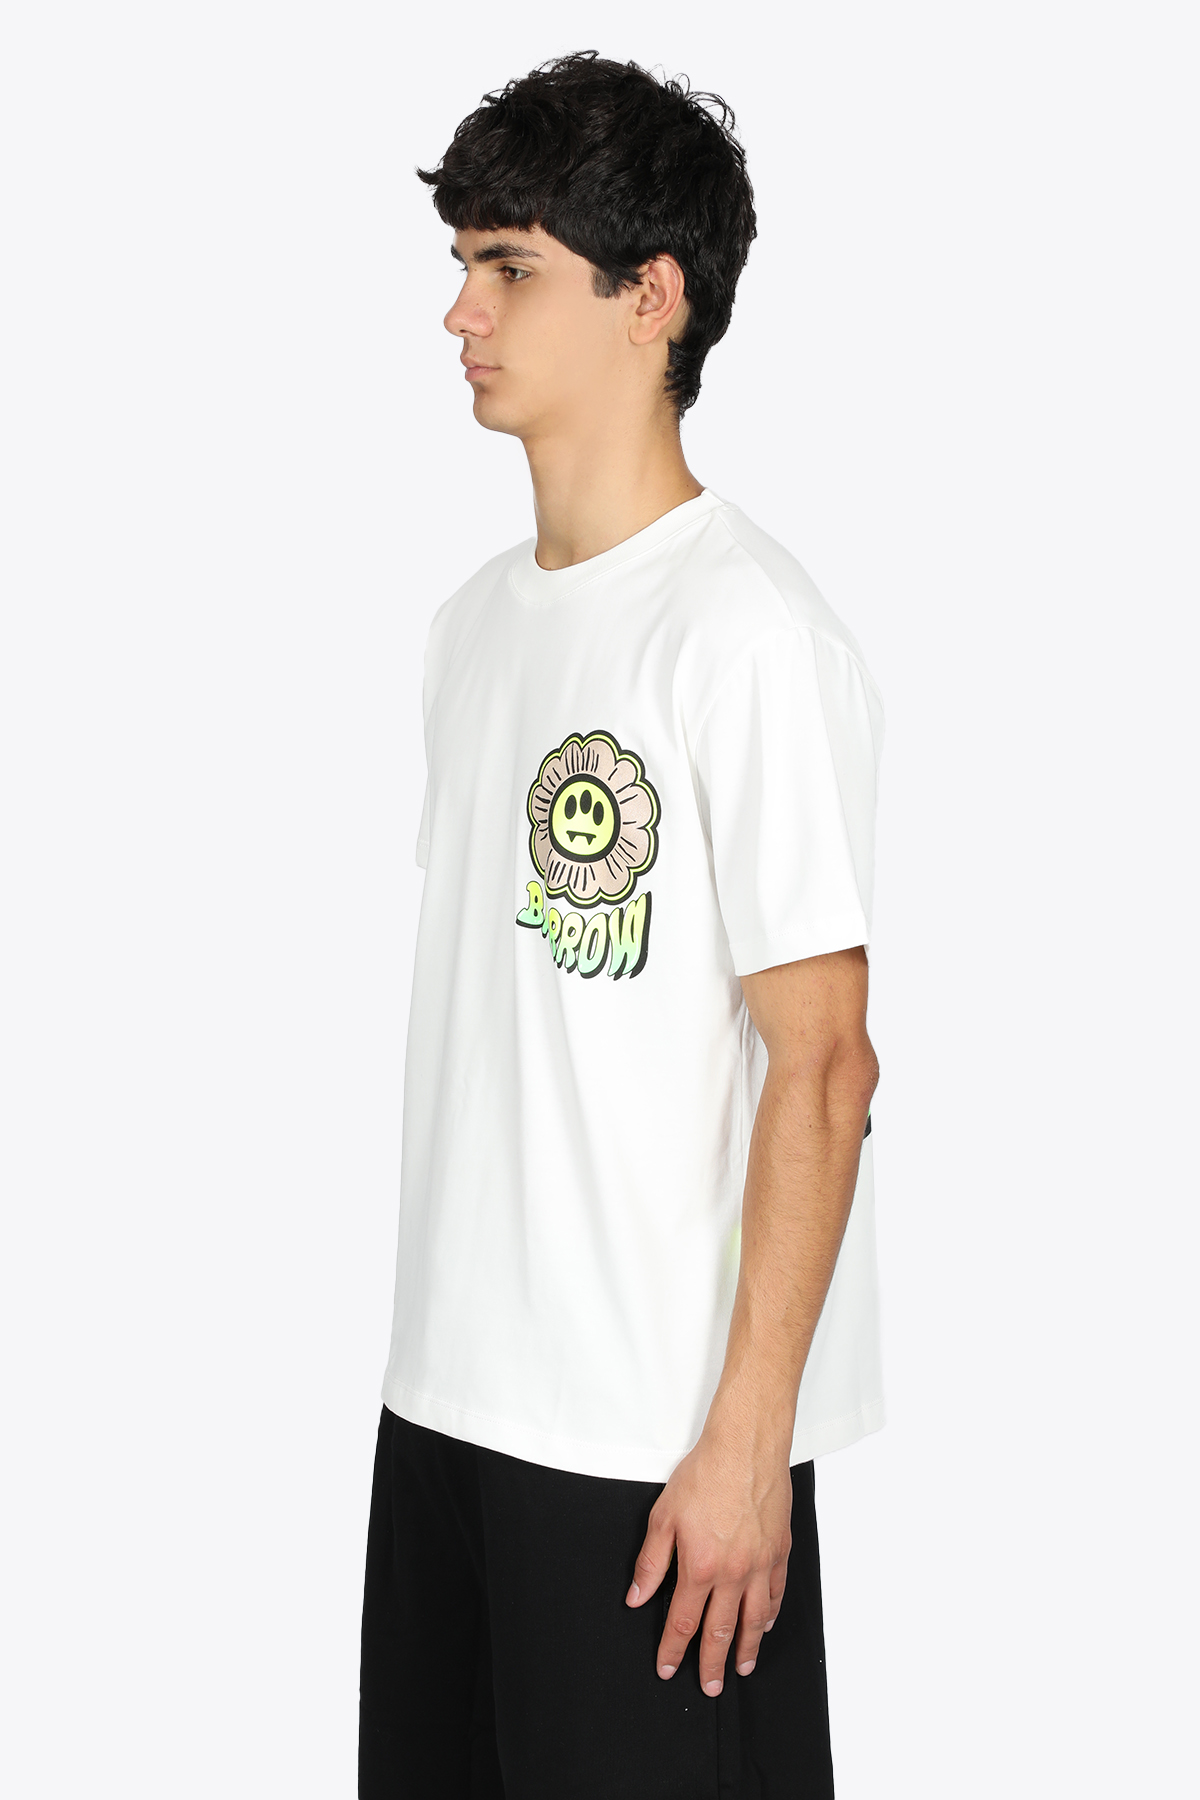 OFF-WHITE COTTON TEE WITH FLOWER PRINT BARROW   8   029934 JERSEY T-SHIRT002